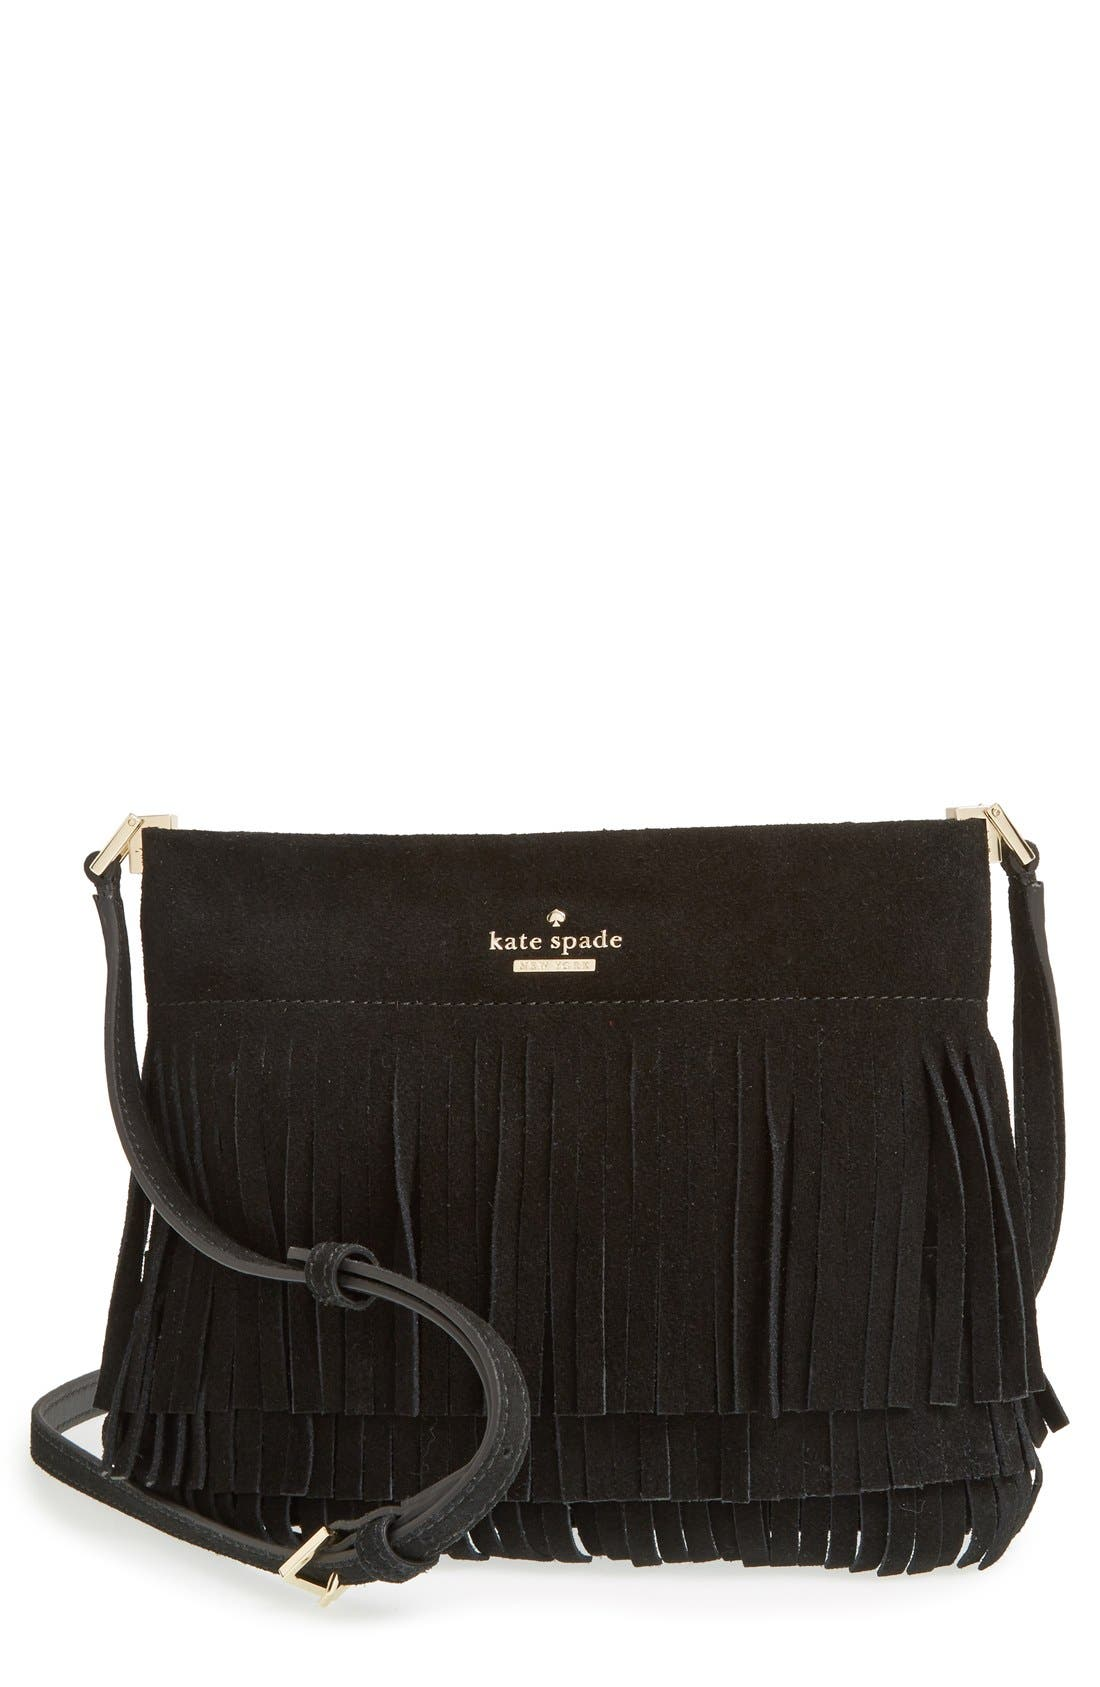 Alternate Image 1 Selected - kate spade new york 'sycamore run - cristi' suede fringe crossbody bag